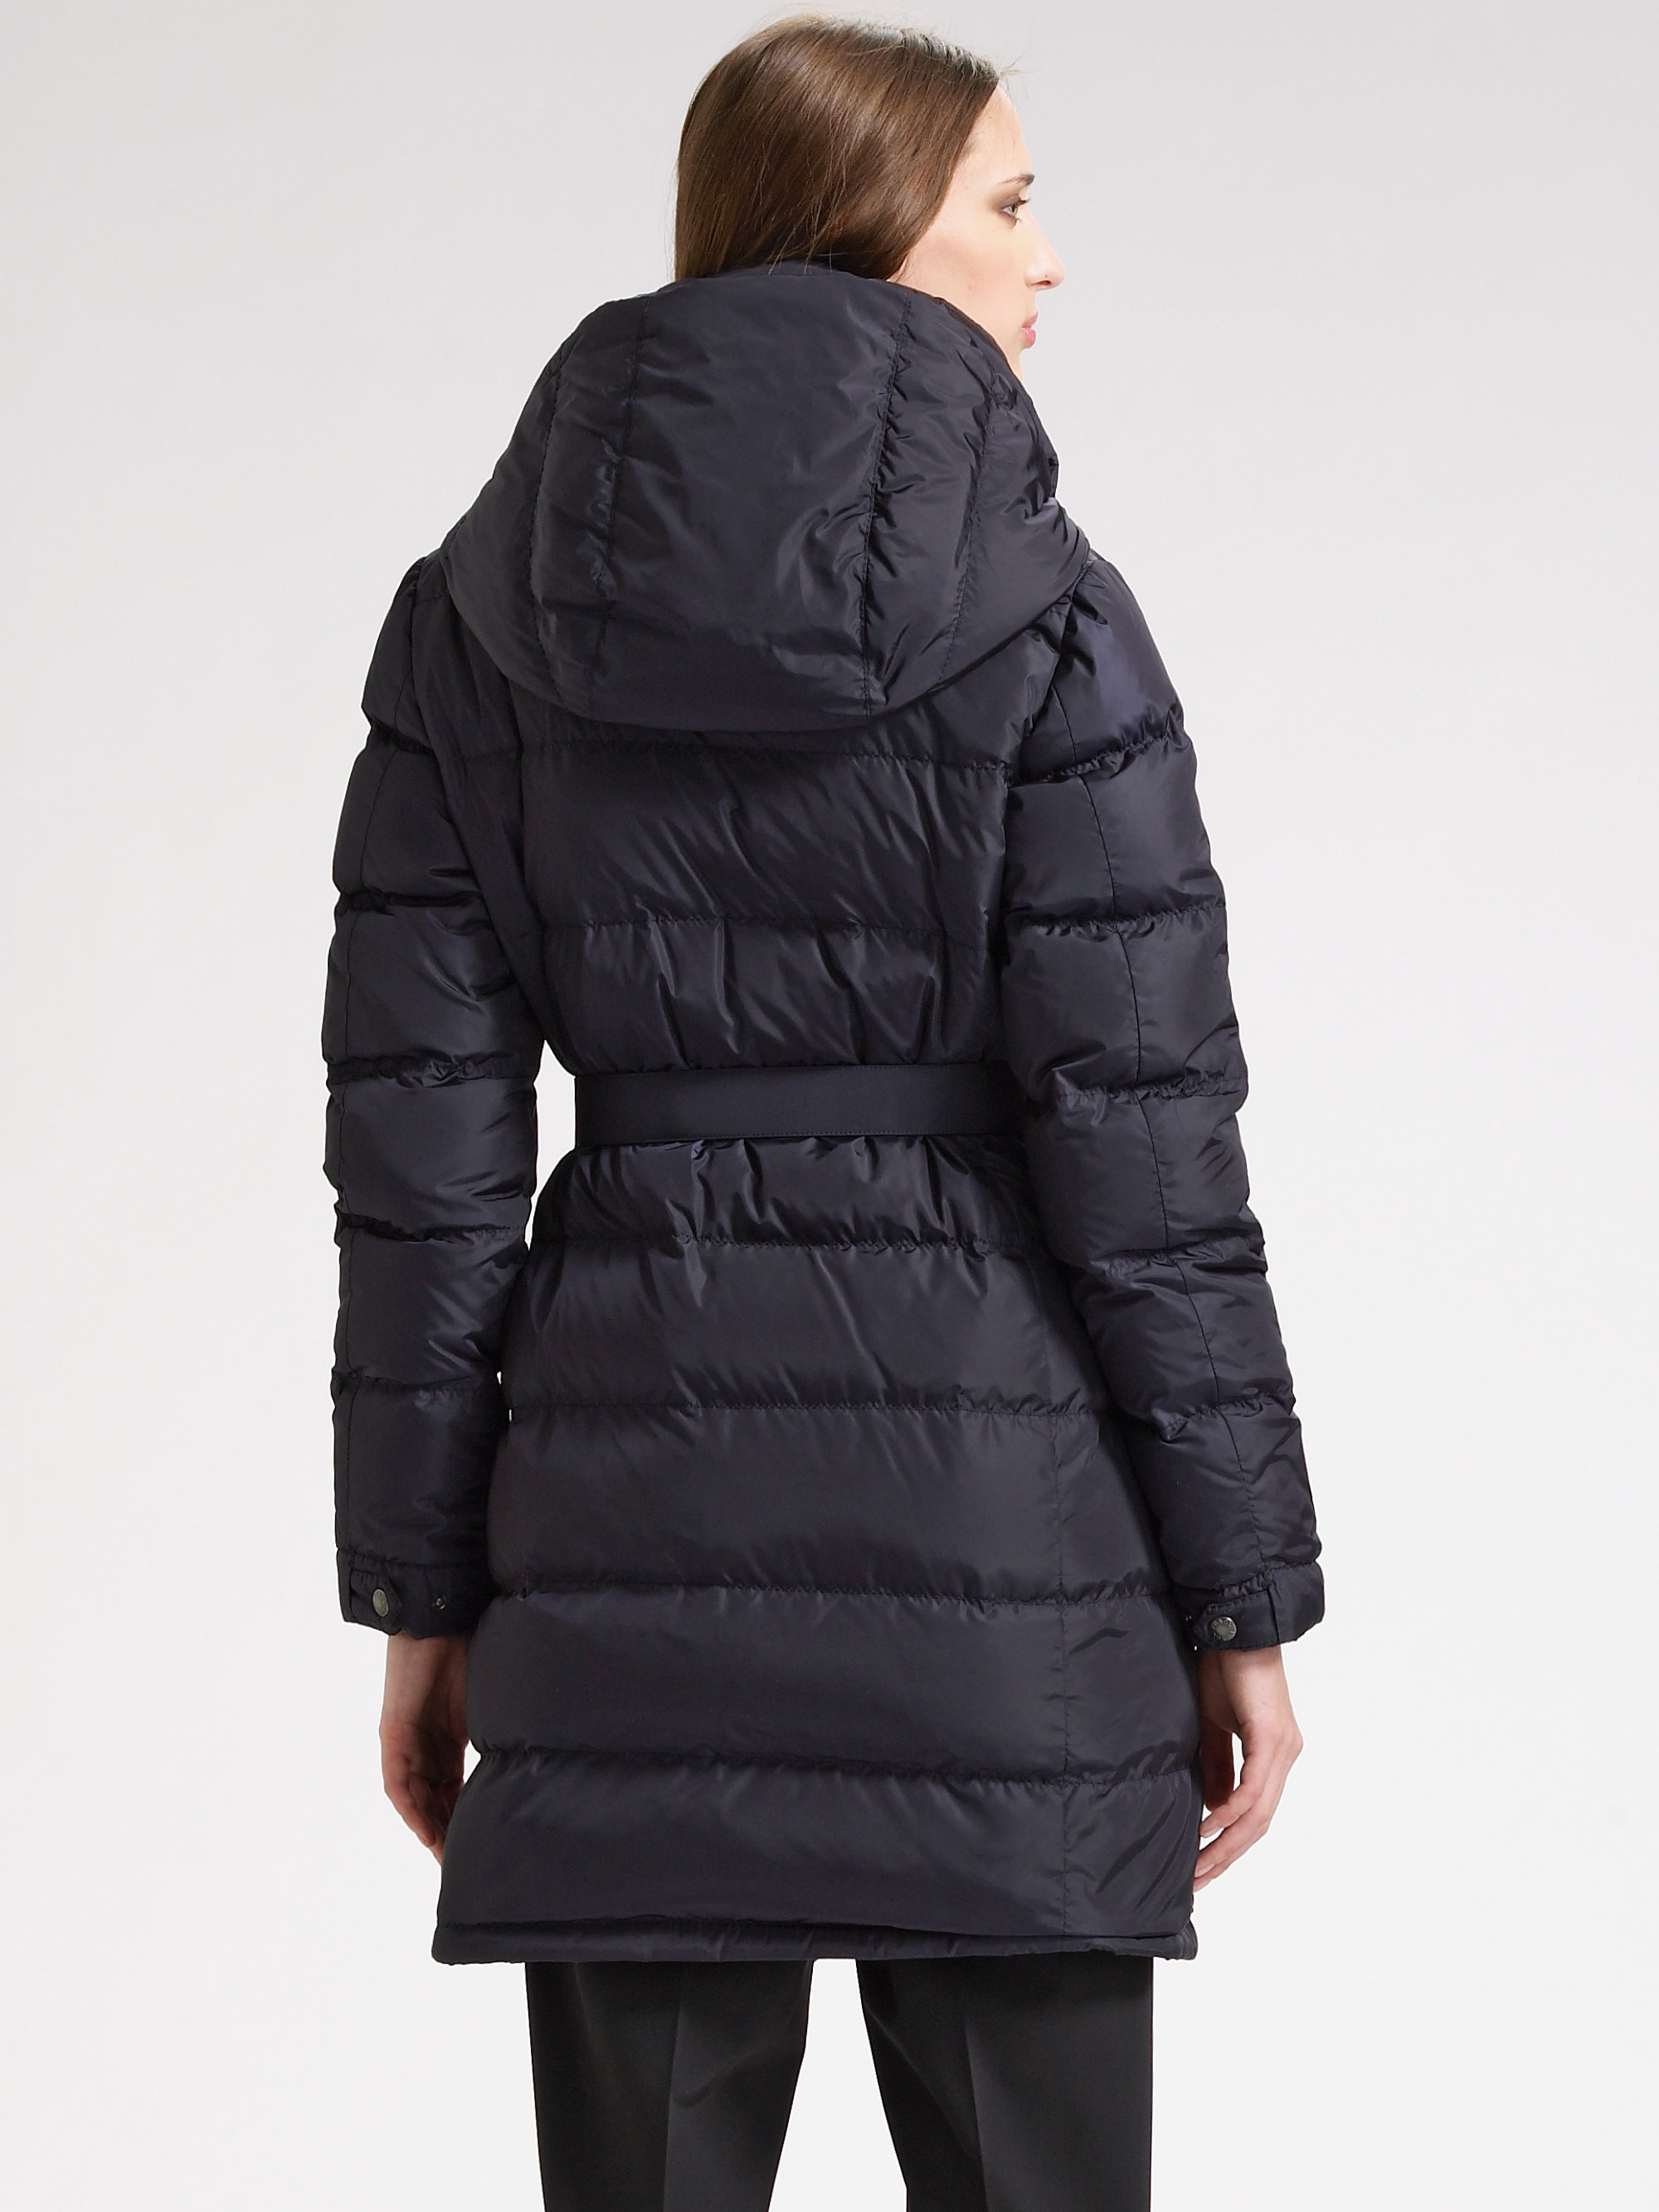 Prada Lyst Black Down Jacket Quilted In Belted vqwqZ0Ad e48c2353c17